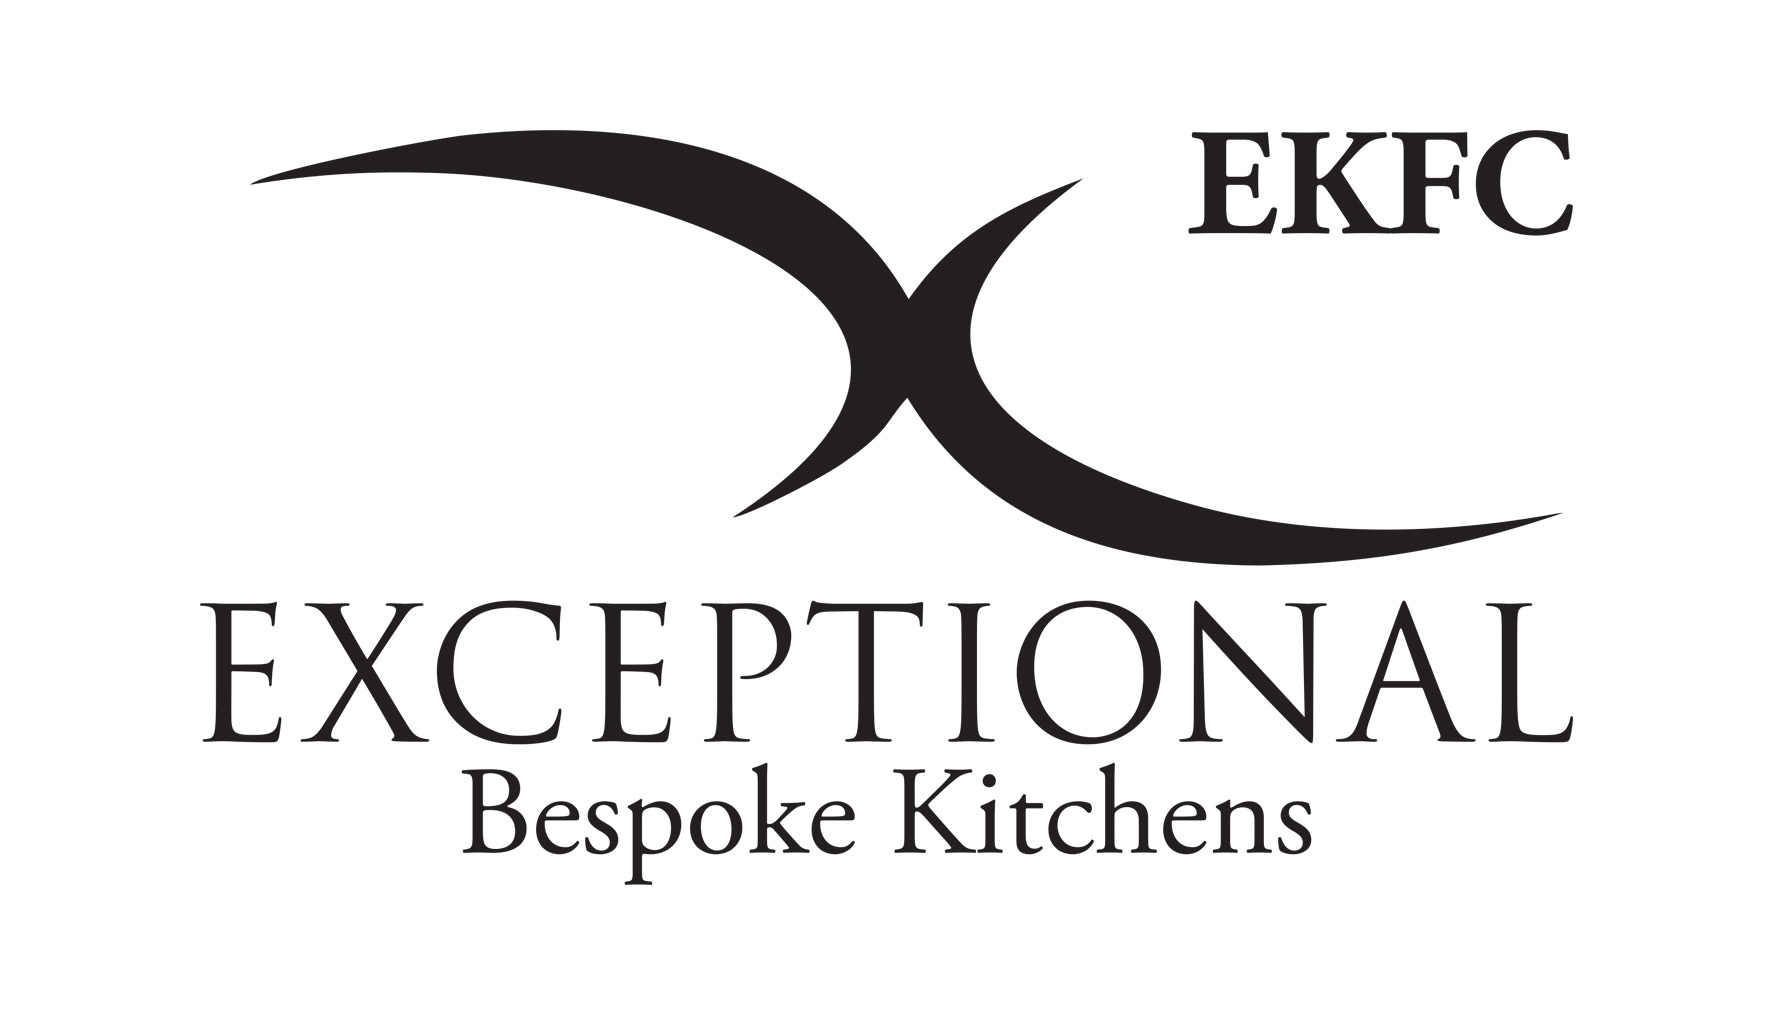 Exceptional Bespoke Kitchens